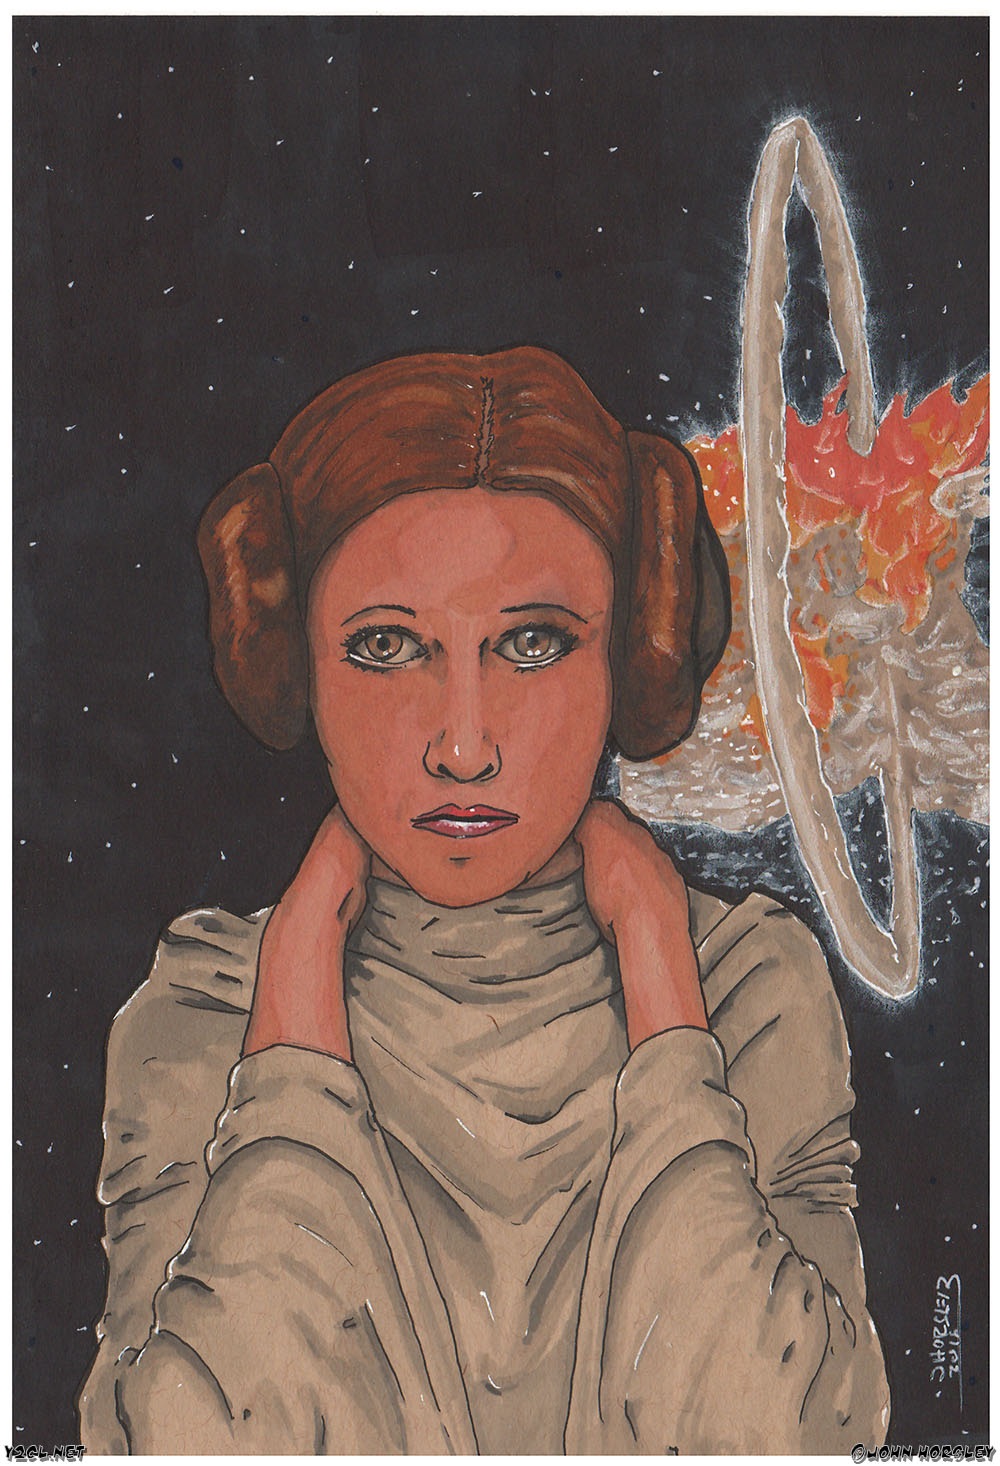 Princess Leia - Death Star Explosion copy